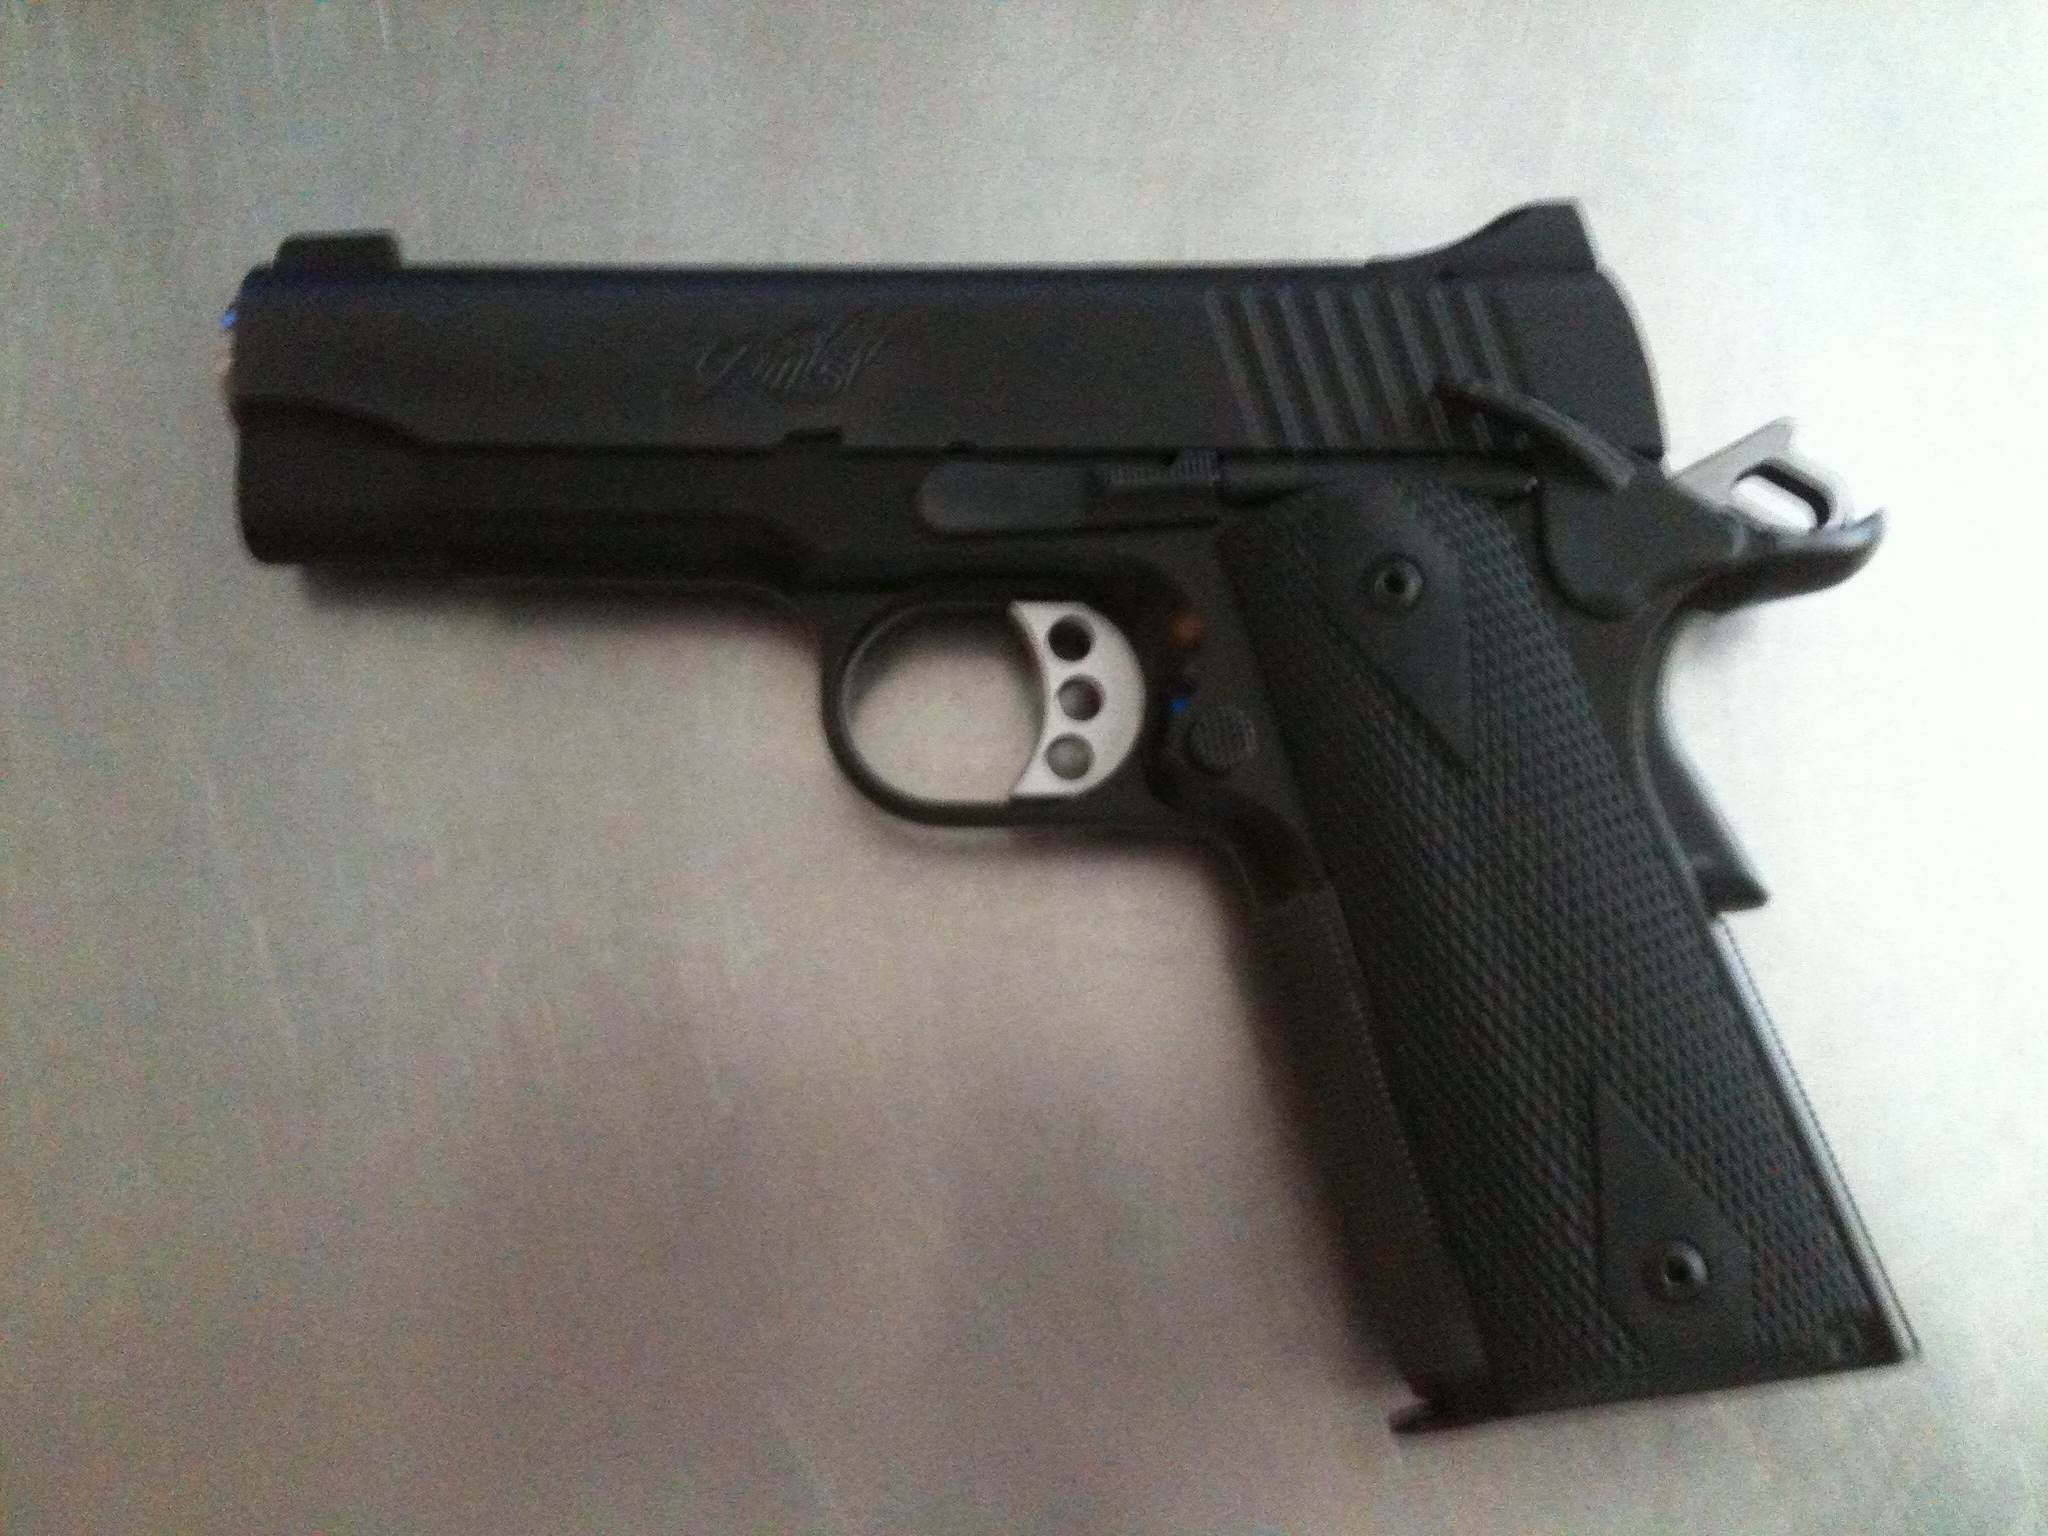 Kimber Pro Carry 2 (325 flawless rounds so far)-photo-12-.jpg